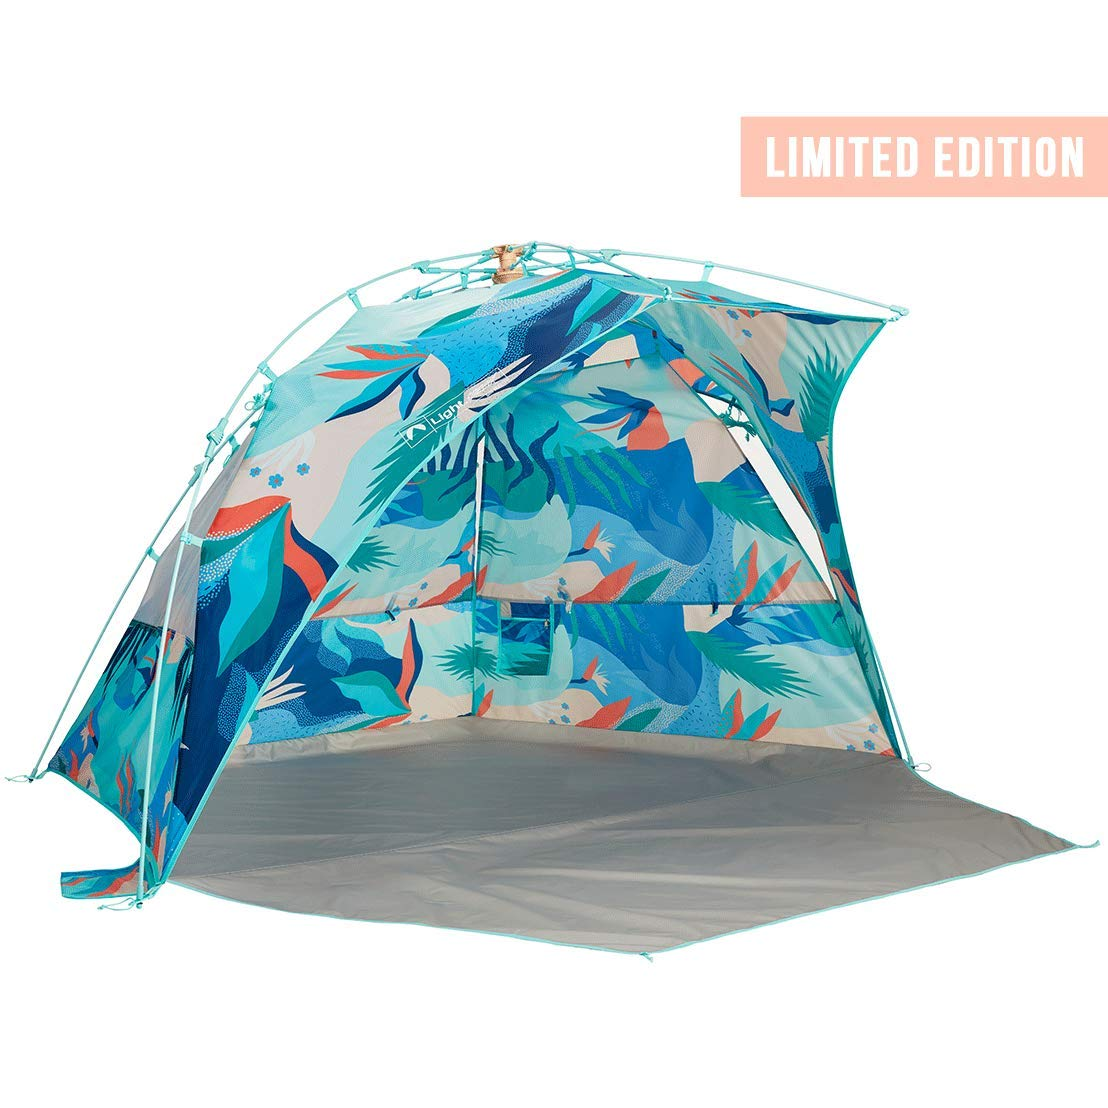 Lightspeed Outdoors Sun Shelter with Clip-Up Privacy Feature (Limited Edition | Glorious Print) by Lightspeed Outdoors